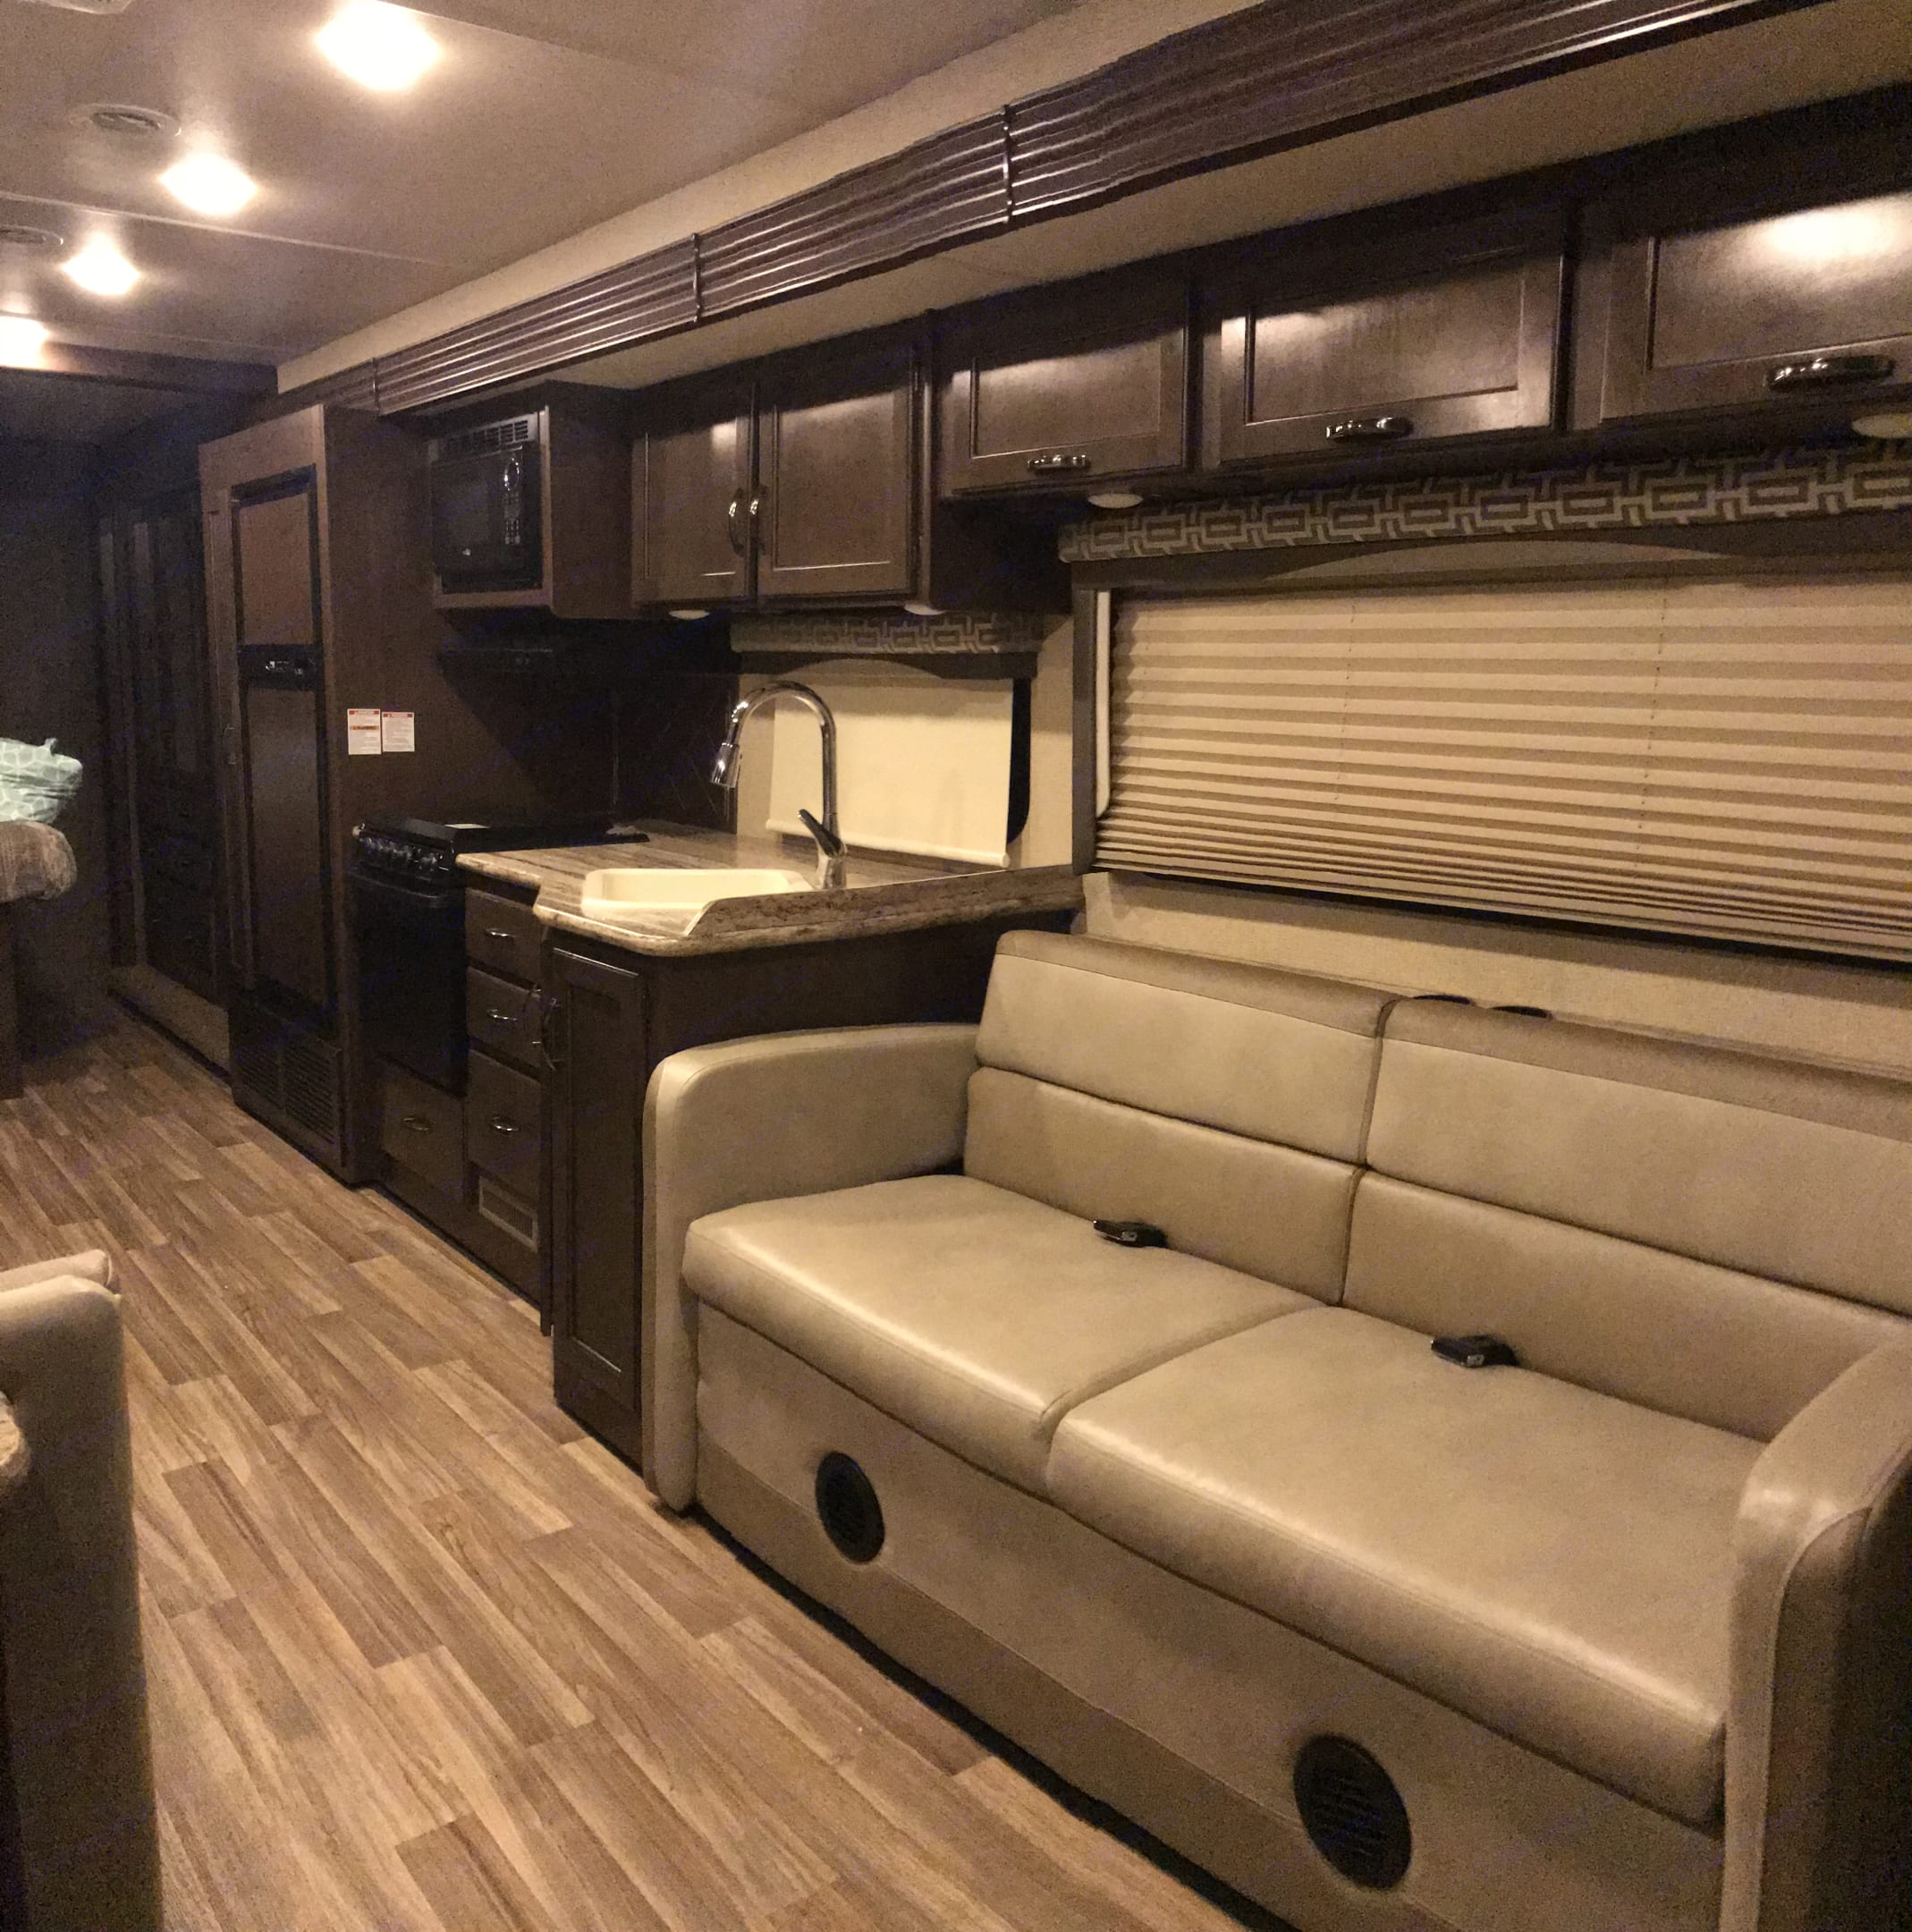 Sleeper sofa You can fold into bed or buckle up enjoy a movie on the TV using the blu-ray player or antenna channels.. Thor Motorcoach ACE 29.3 2017